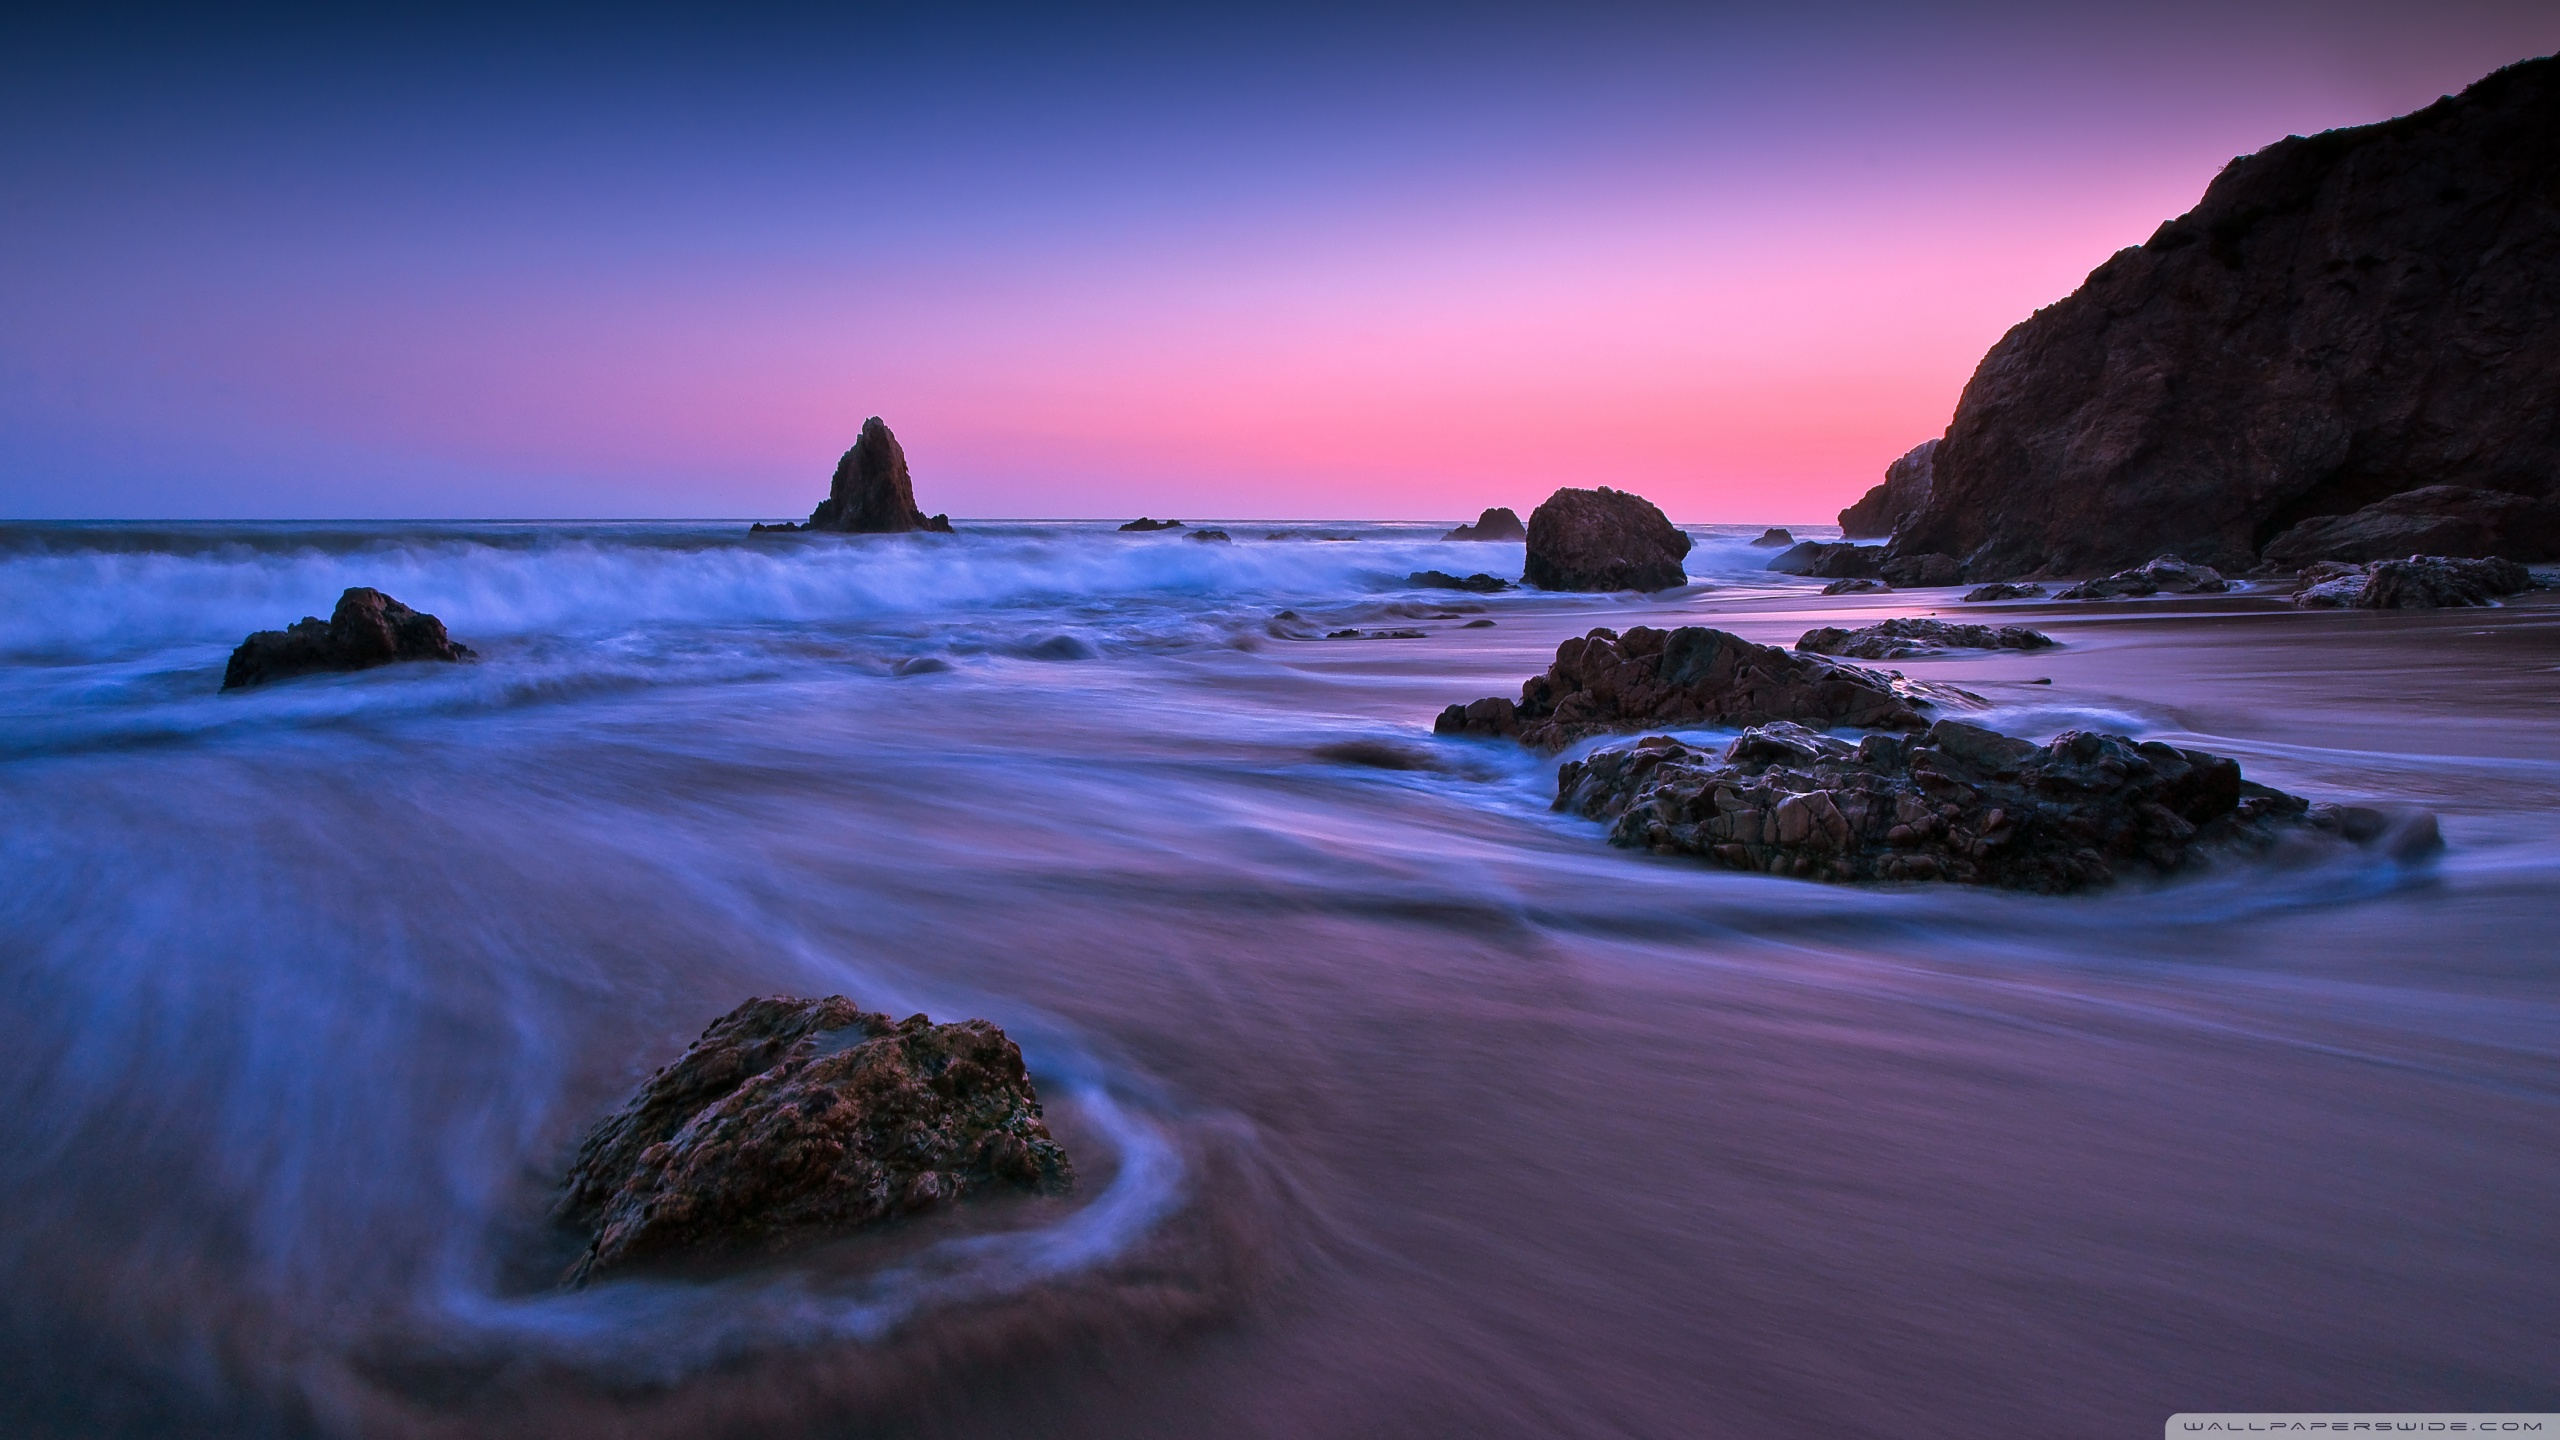 purple_sunset_light-wallpaper-2560x1440